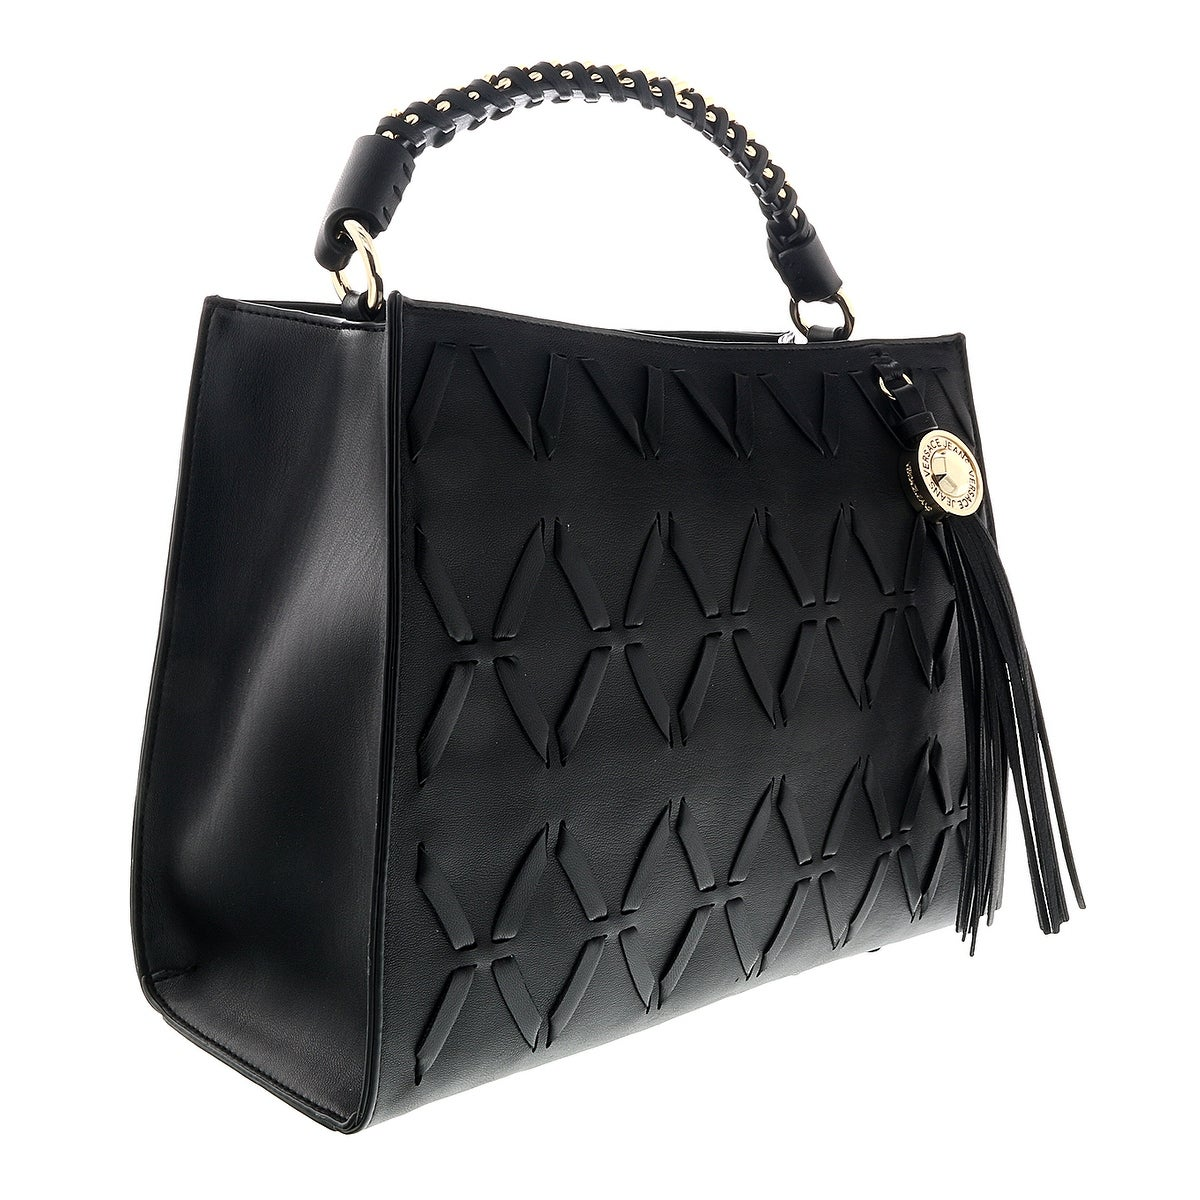 5ddced67953 Designer Handbags | Find Great Designer Store Deals Shopping at Overstock